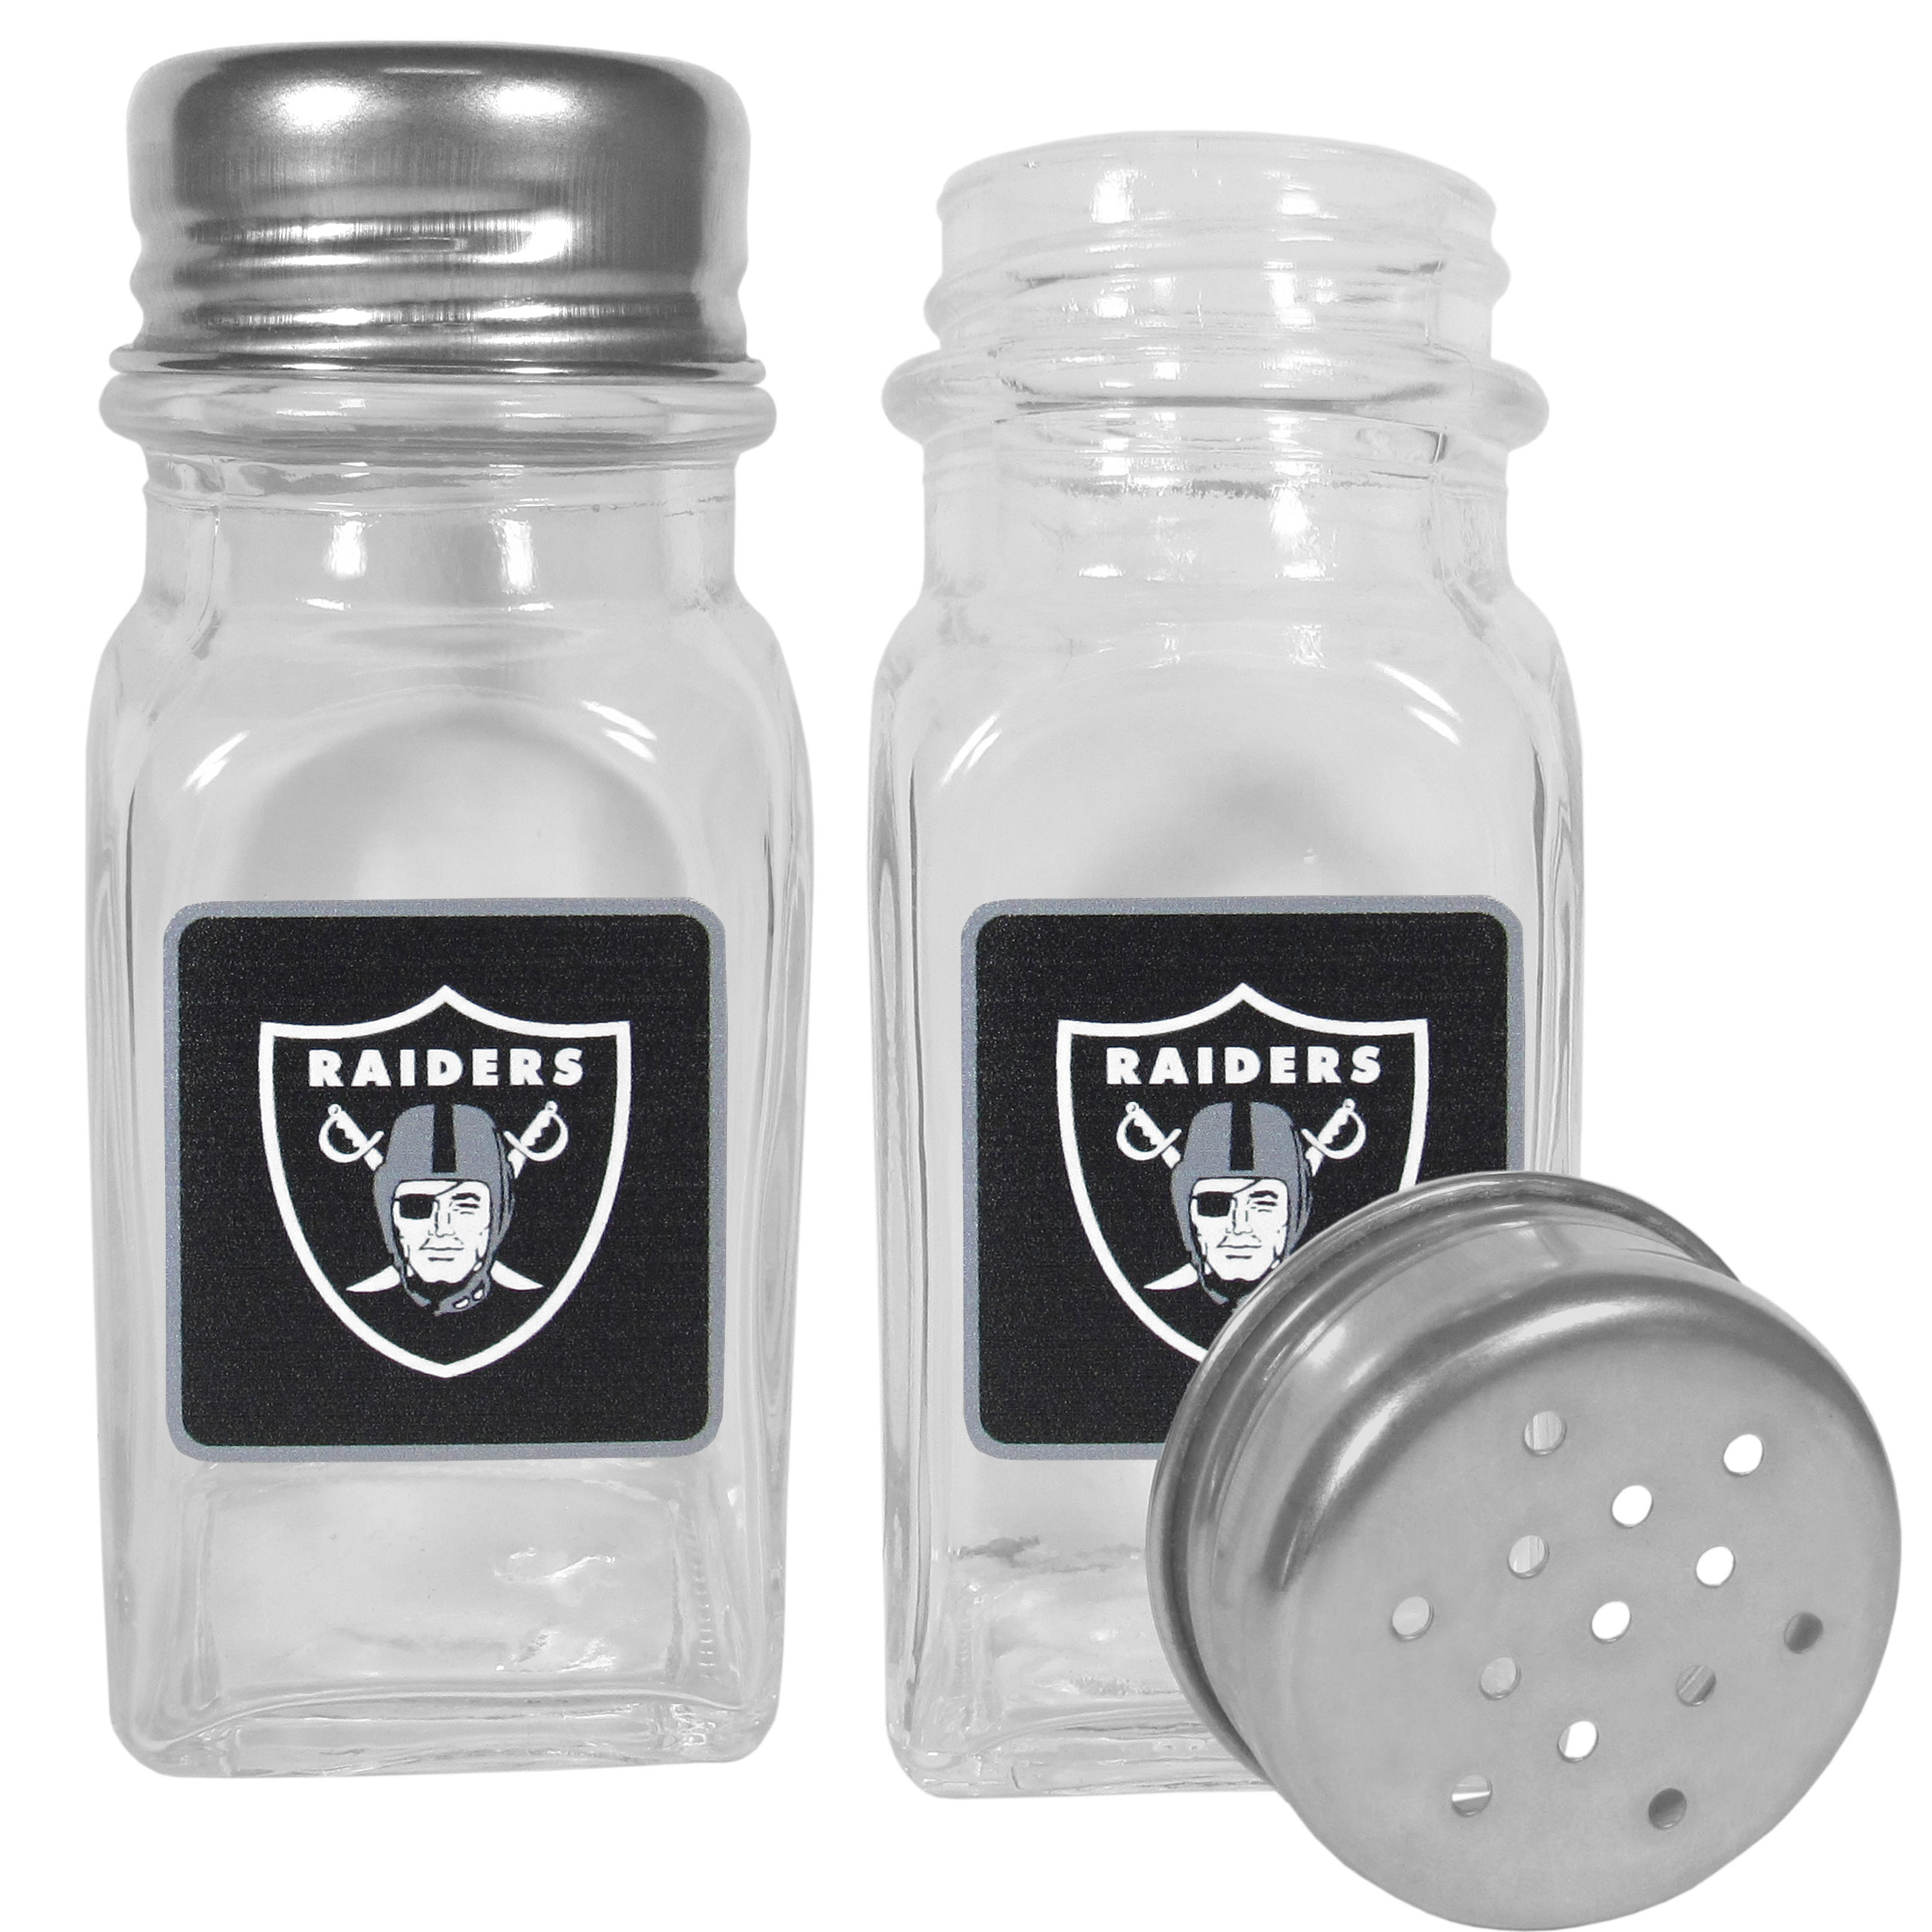 Oakland Raiders Graphics Salt and Pepper Shaker - No tailgate party is complete without your Oakland Raiders salt & pepper shakers featuring bright team logos. The diner replica salt and pepper shakers are glass with screw top lids. These team shakers are a great grill accessory whether you are barbecuing on the patio, picnicing or having a game day party.